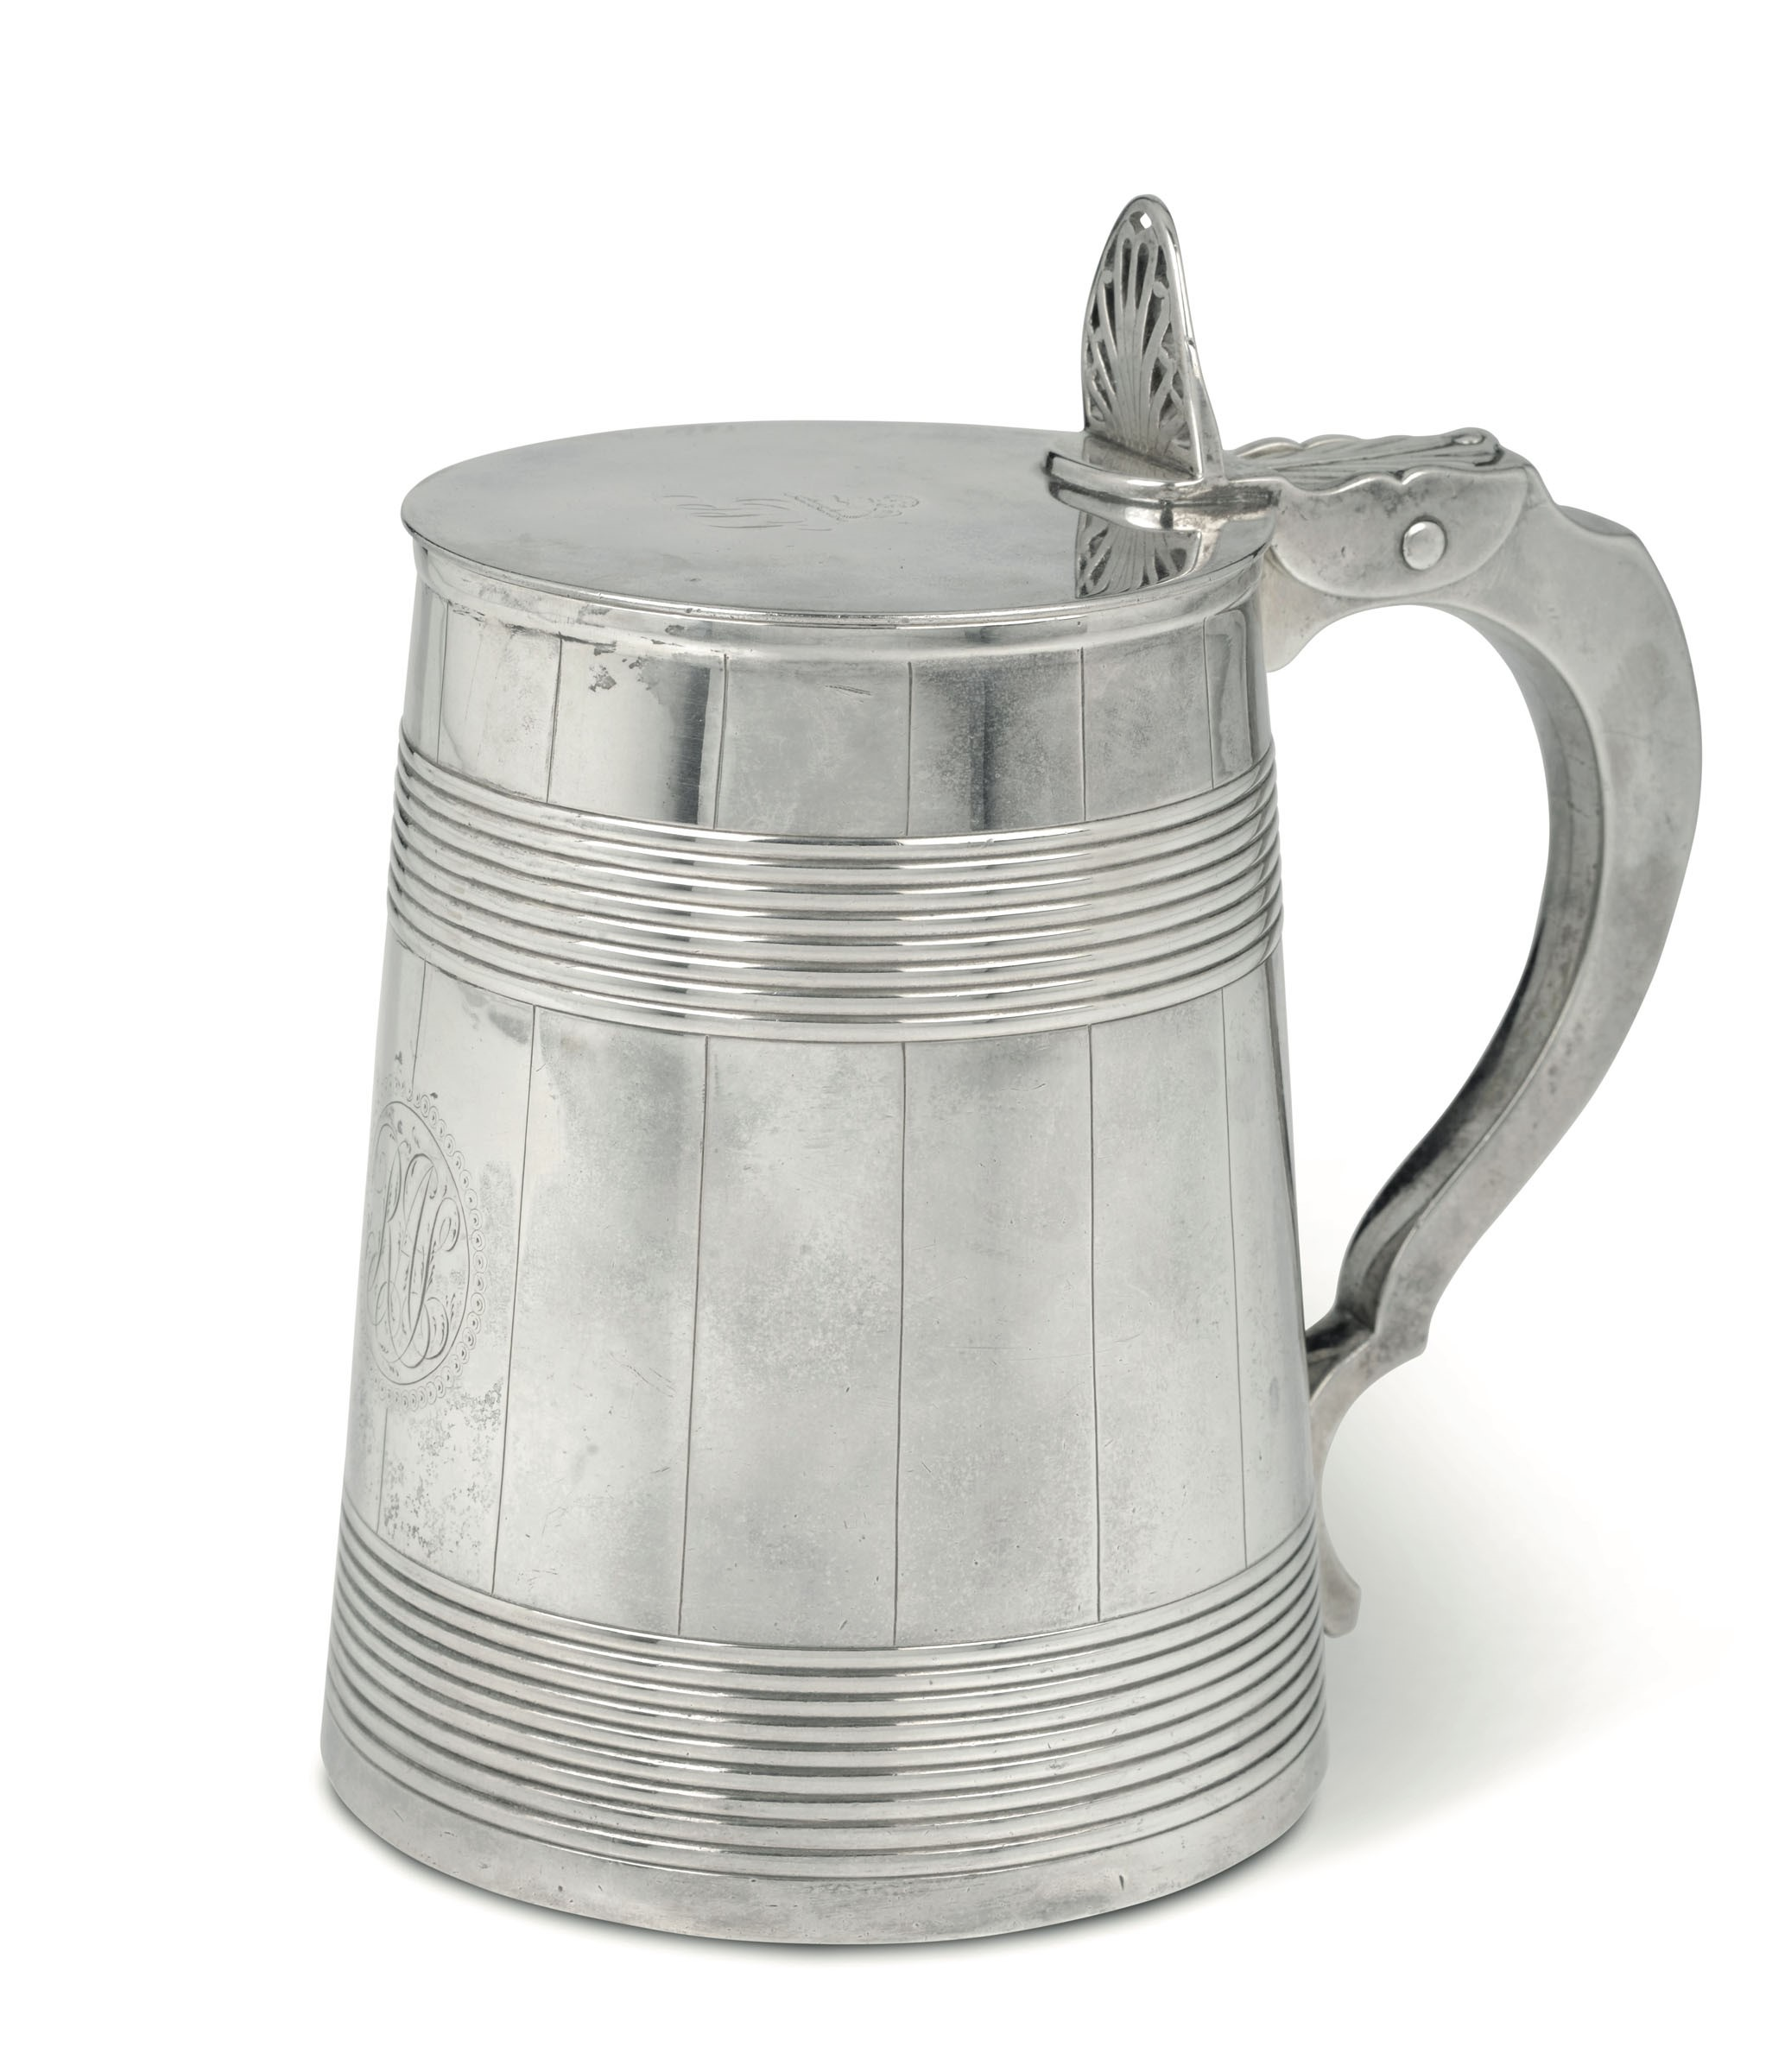 Lot 9 - A silver tankard, London, 1784 - Silversmiths Rich. Carter, Danile Smith and Robert [...]